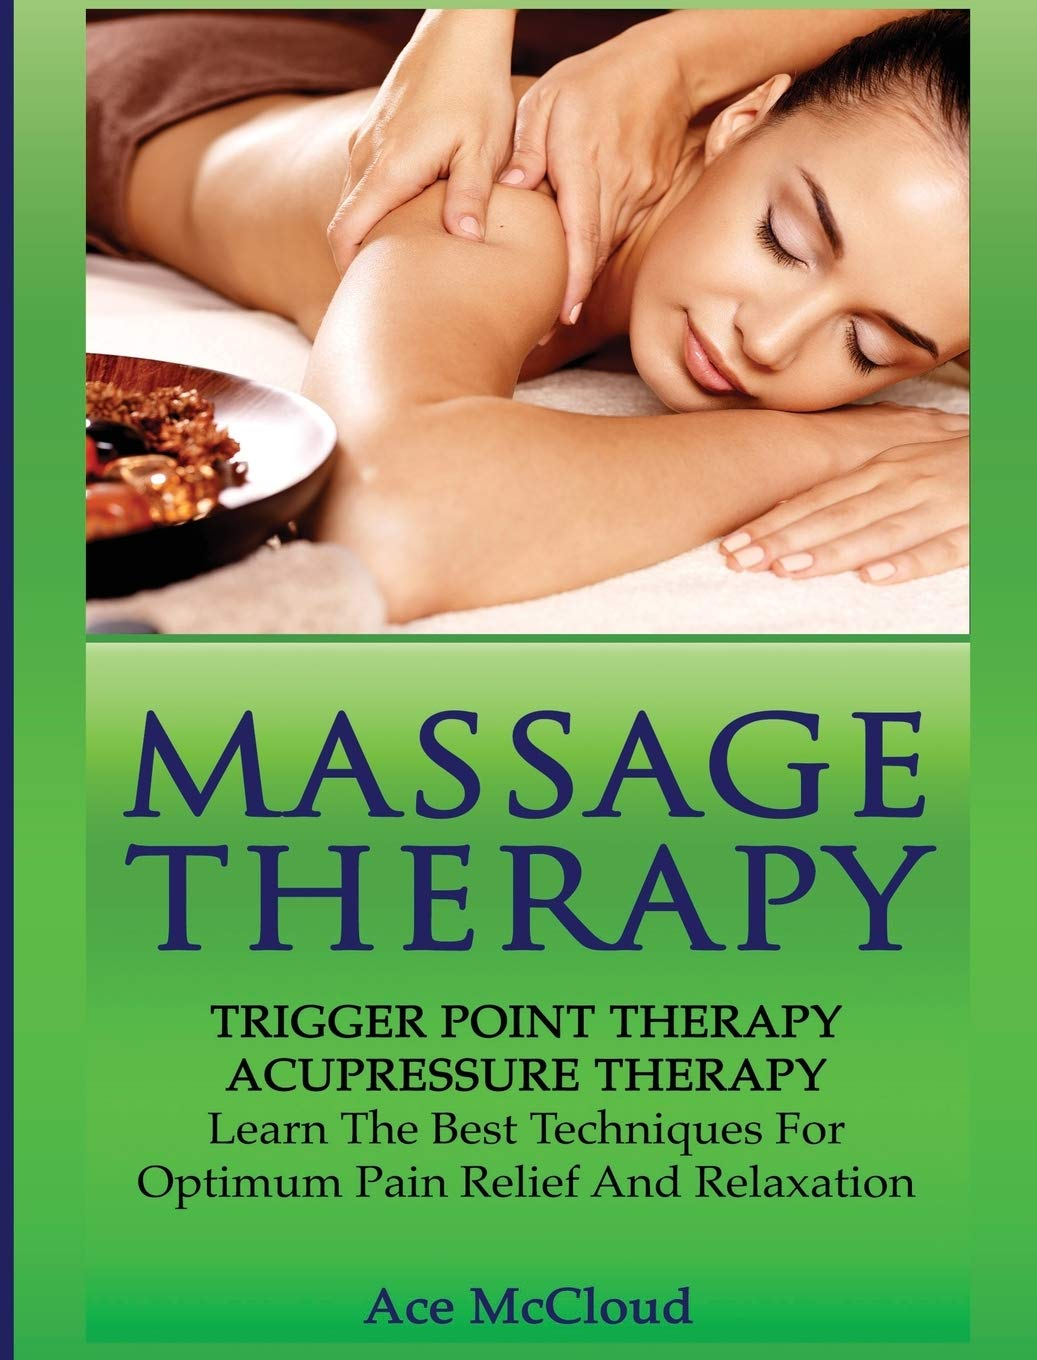 Top 10 Best ace mccloud massage therapy trigger points Reviews